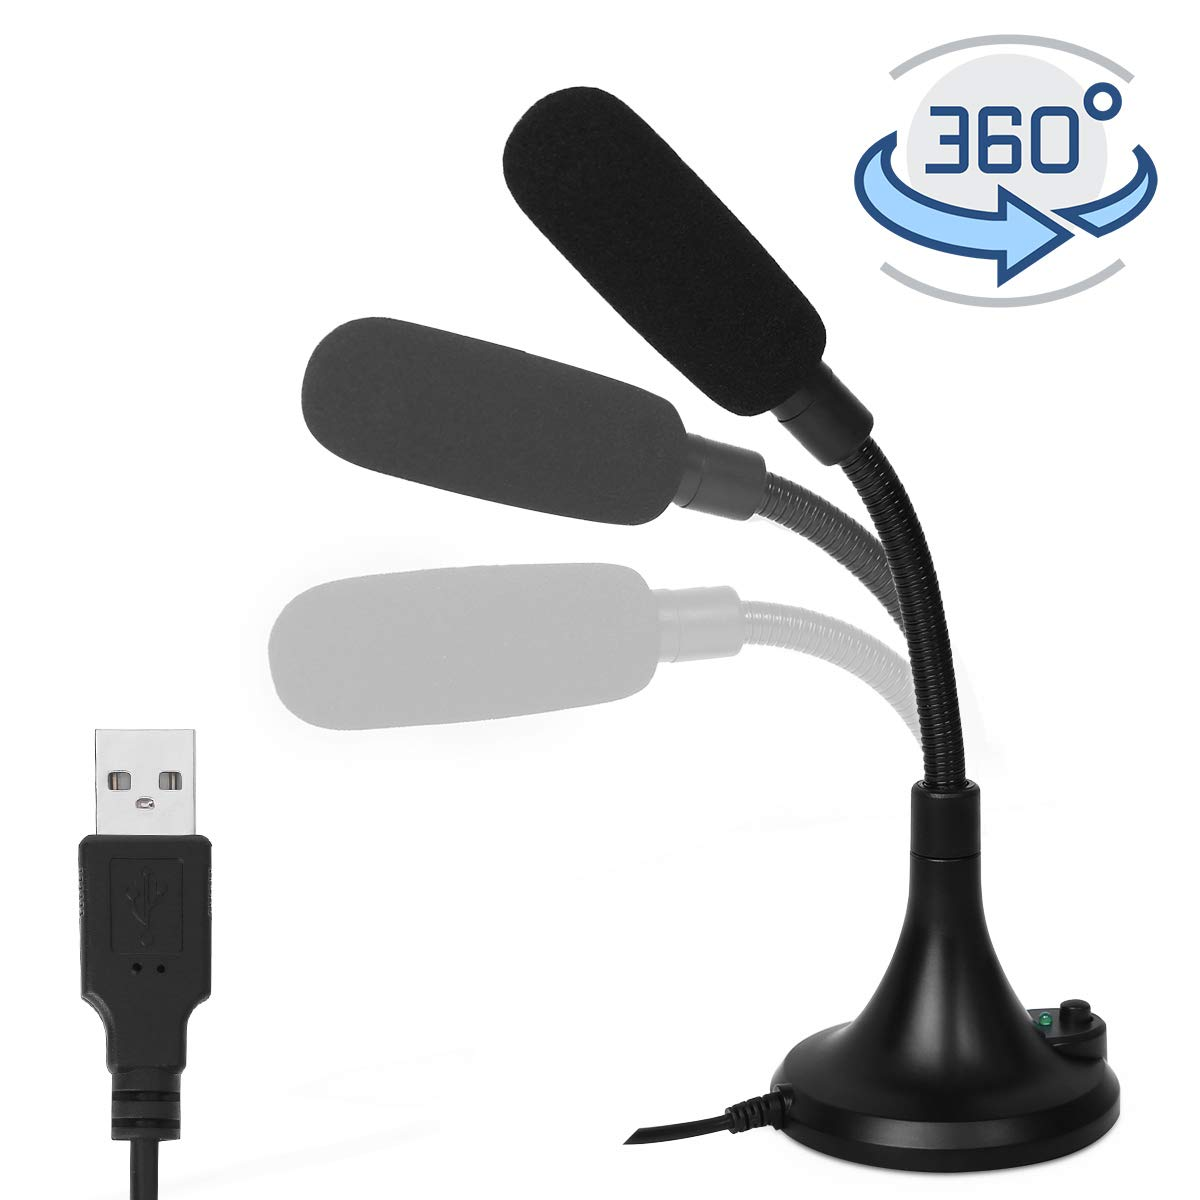 USB Microphone, PC Microphone with LED Indicator, Meeting MIC Speech Condenser Microphone for Computer/Laptop/Desktop/Windows/Mac, Record and Chat for YouTube, Sk,Podcasting,Gaming